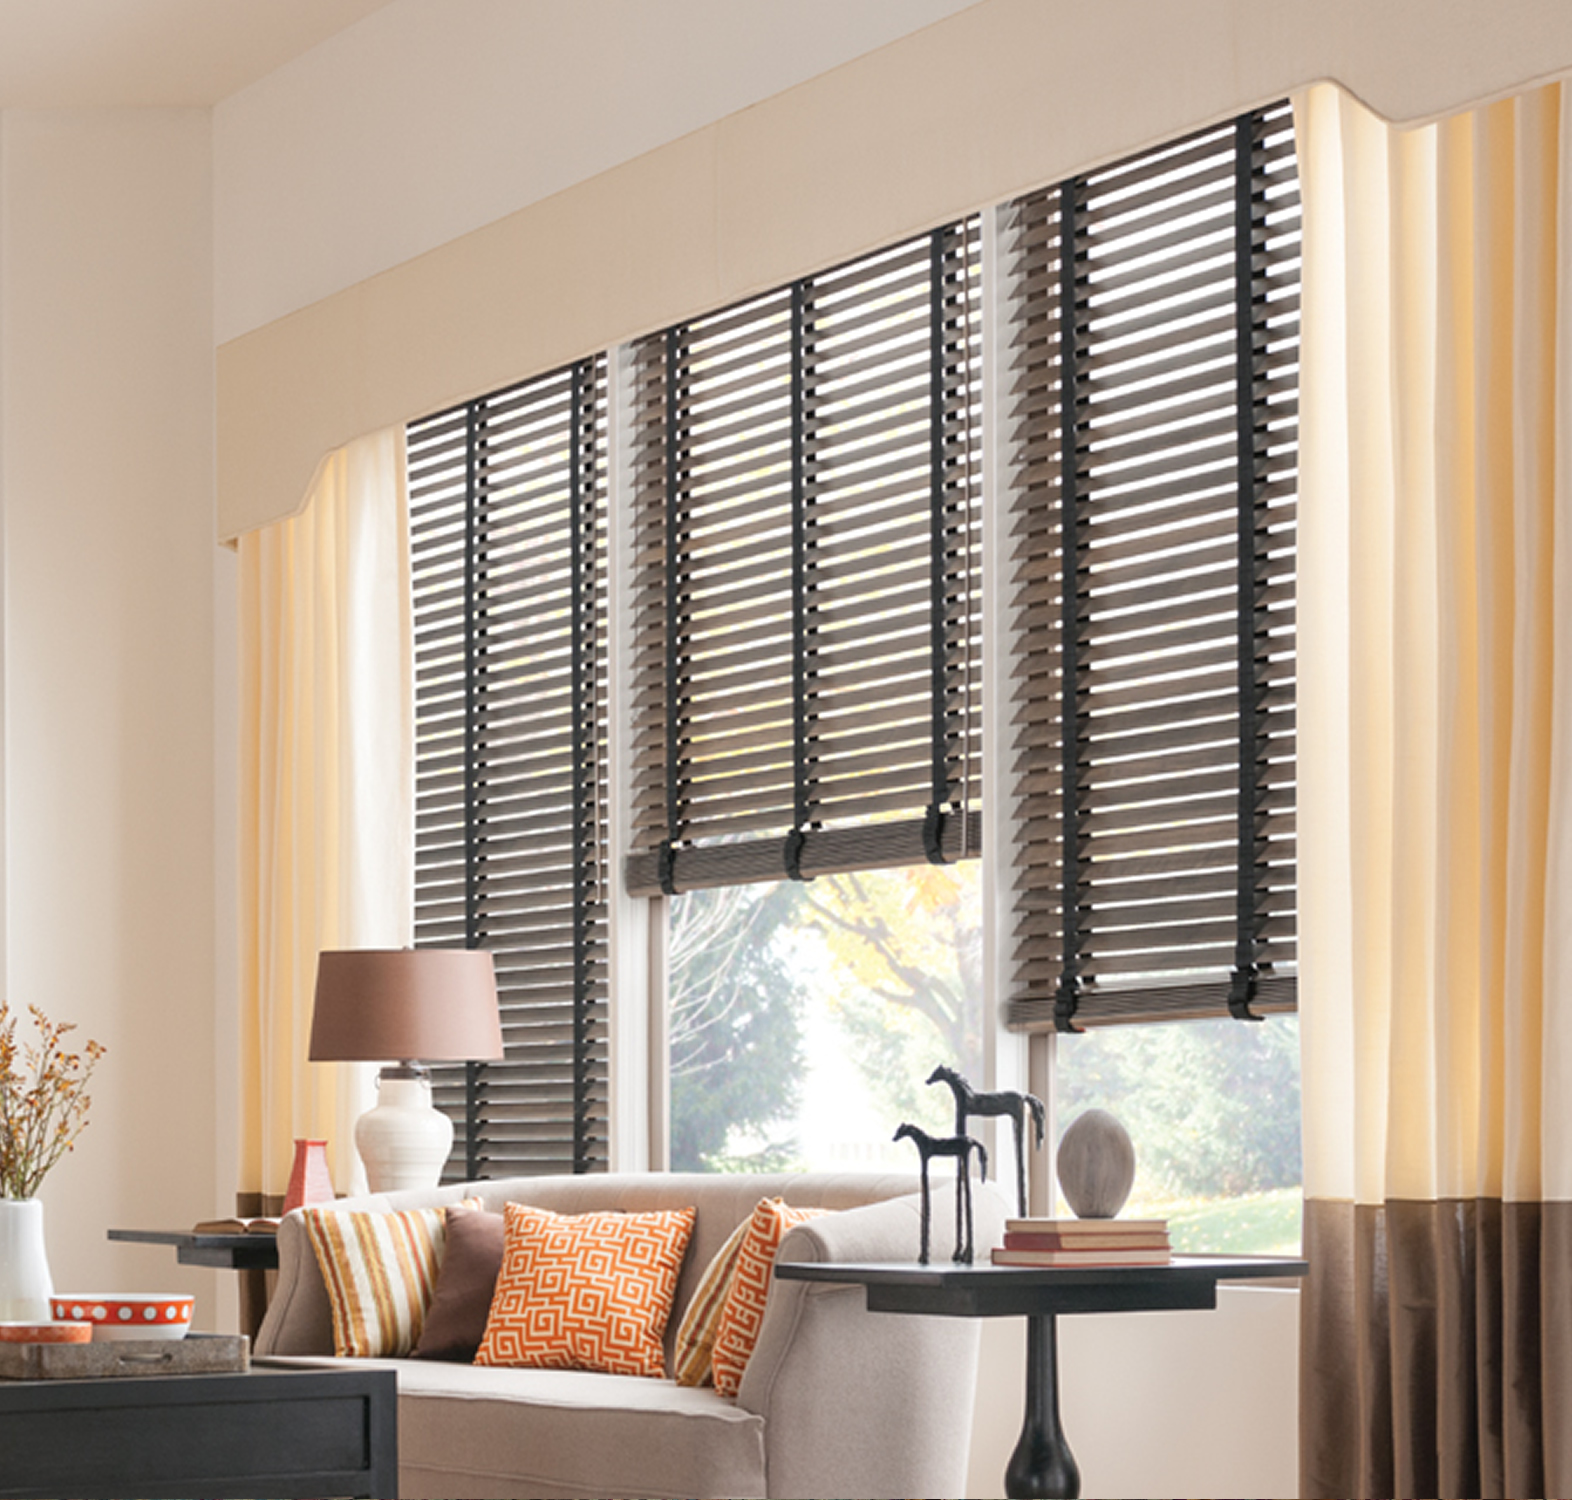 window for option coverings stylish office elegant can blinds windows are ultimate home there buy and if to faux be looking custom your or the side you wood